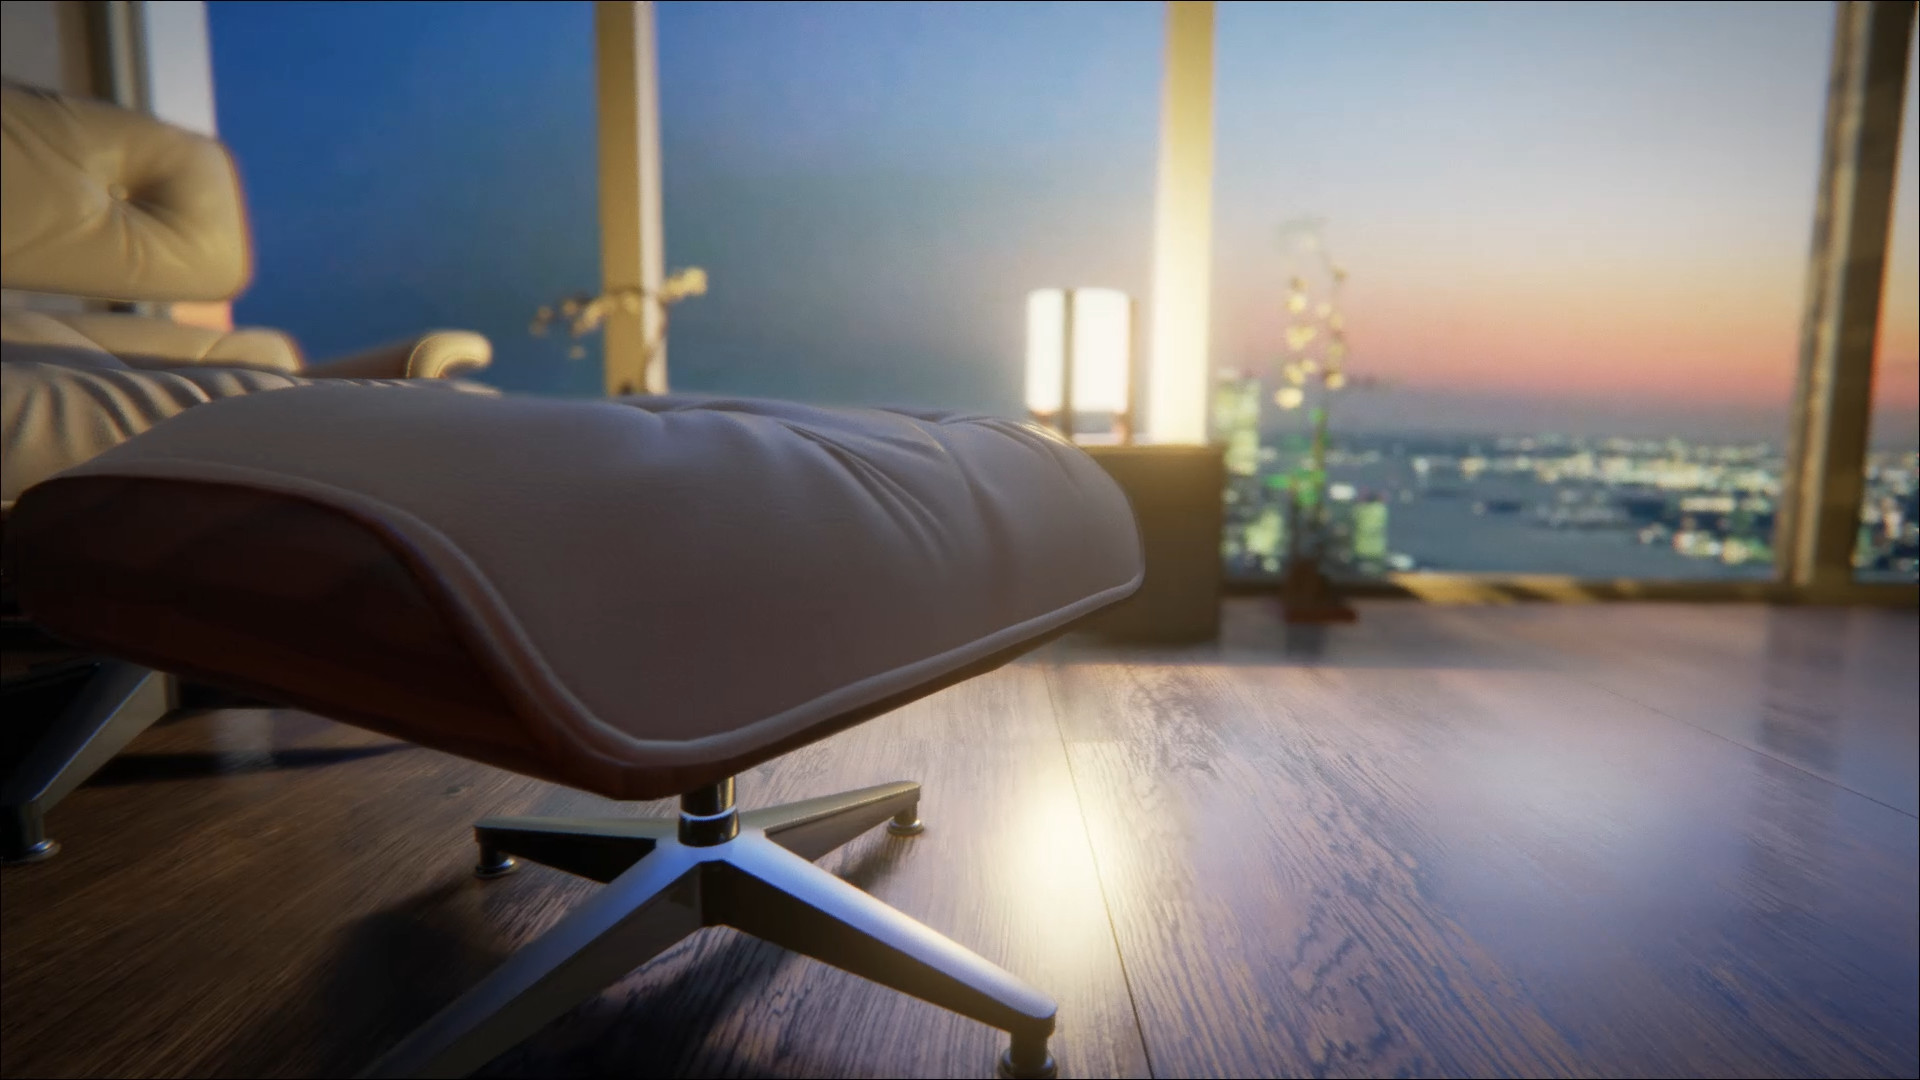 ArtStation - )Unreal Engine 4 Render